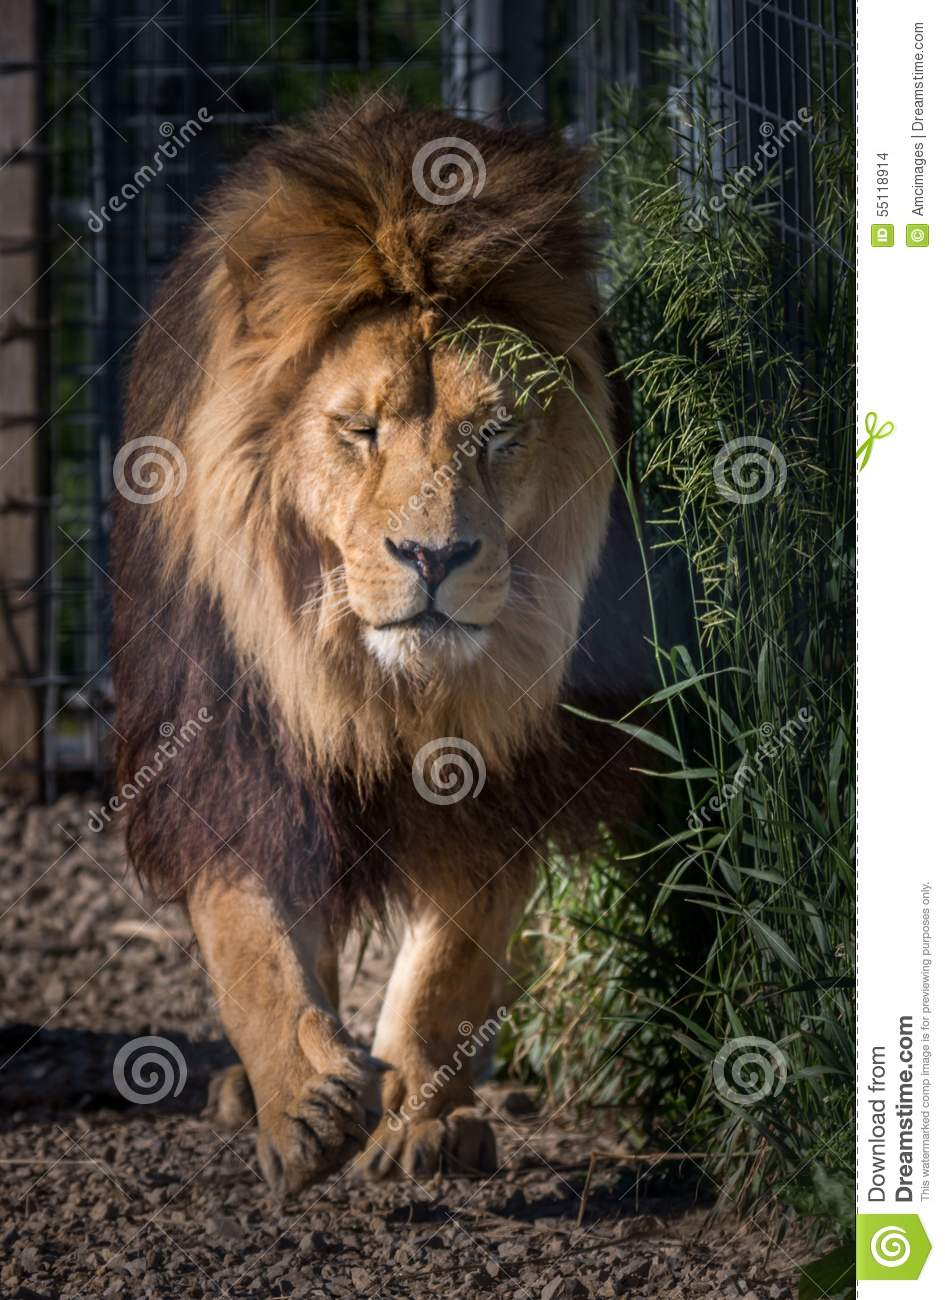 Lion, Africa and Africans on Pinterest